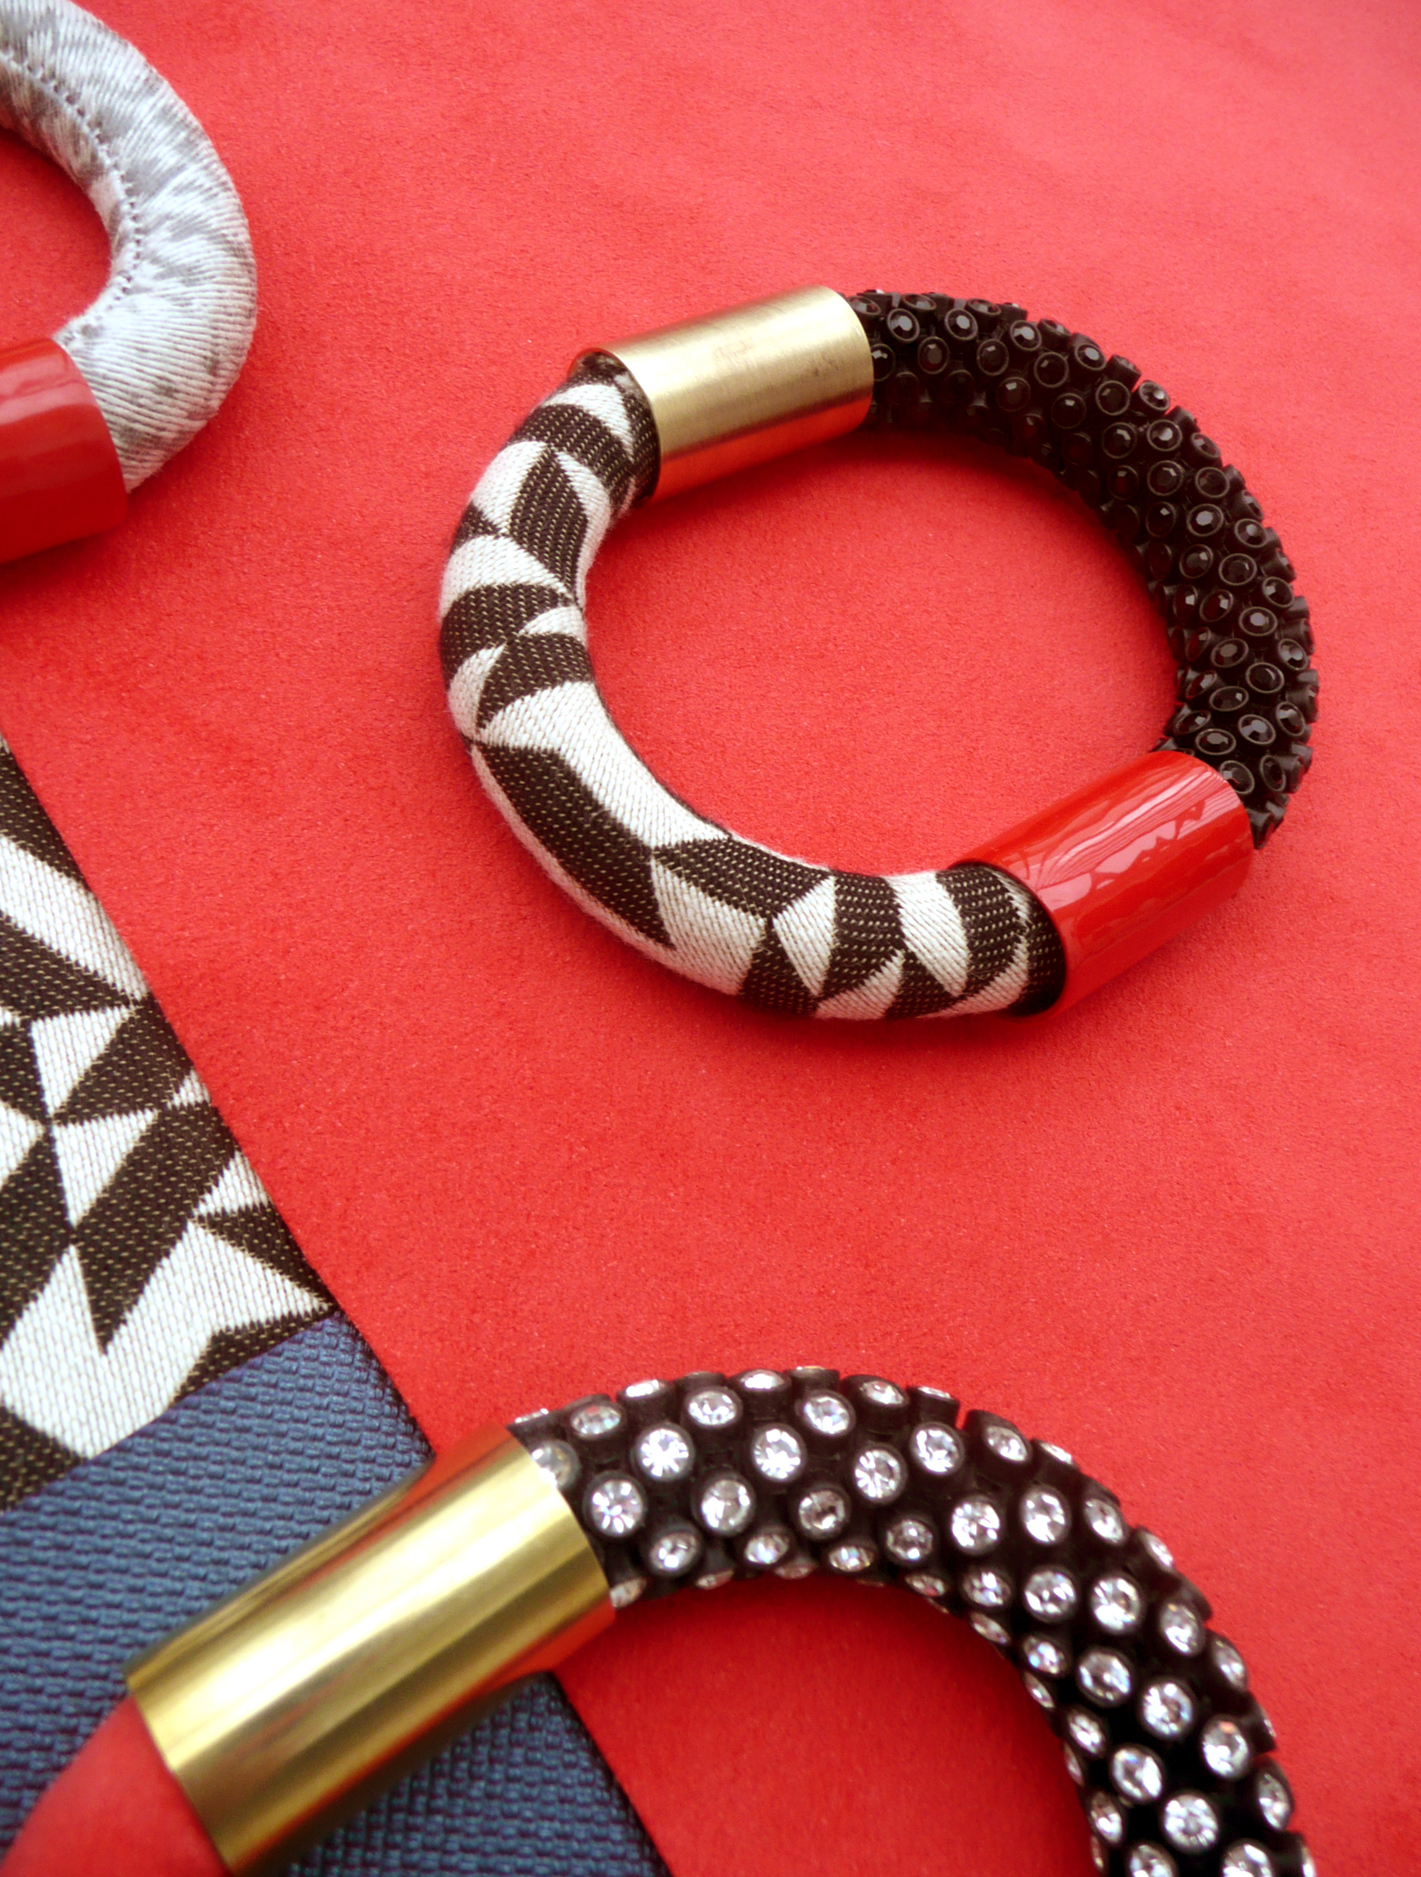 Knoll Textiles Jewelry Collection by Nektar De Stagni